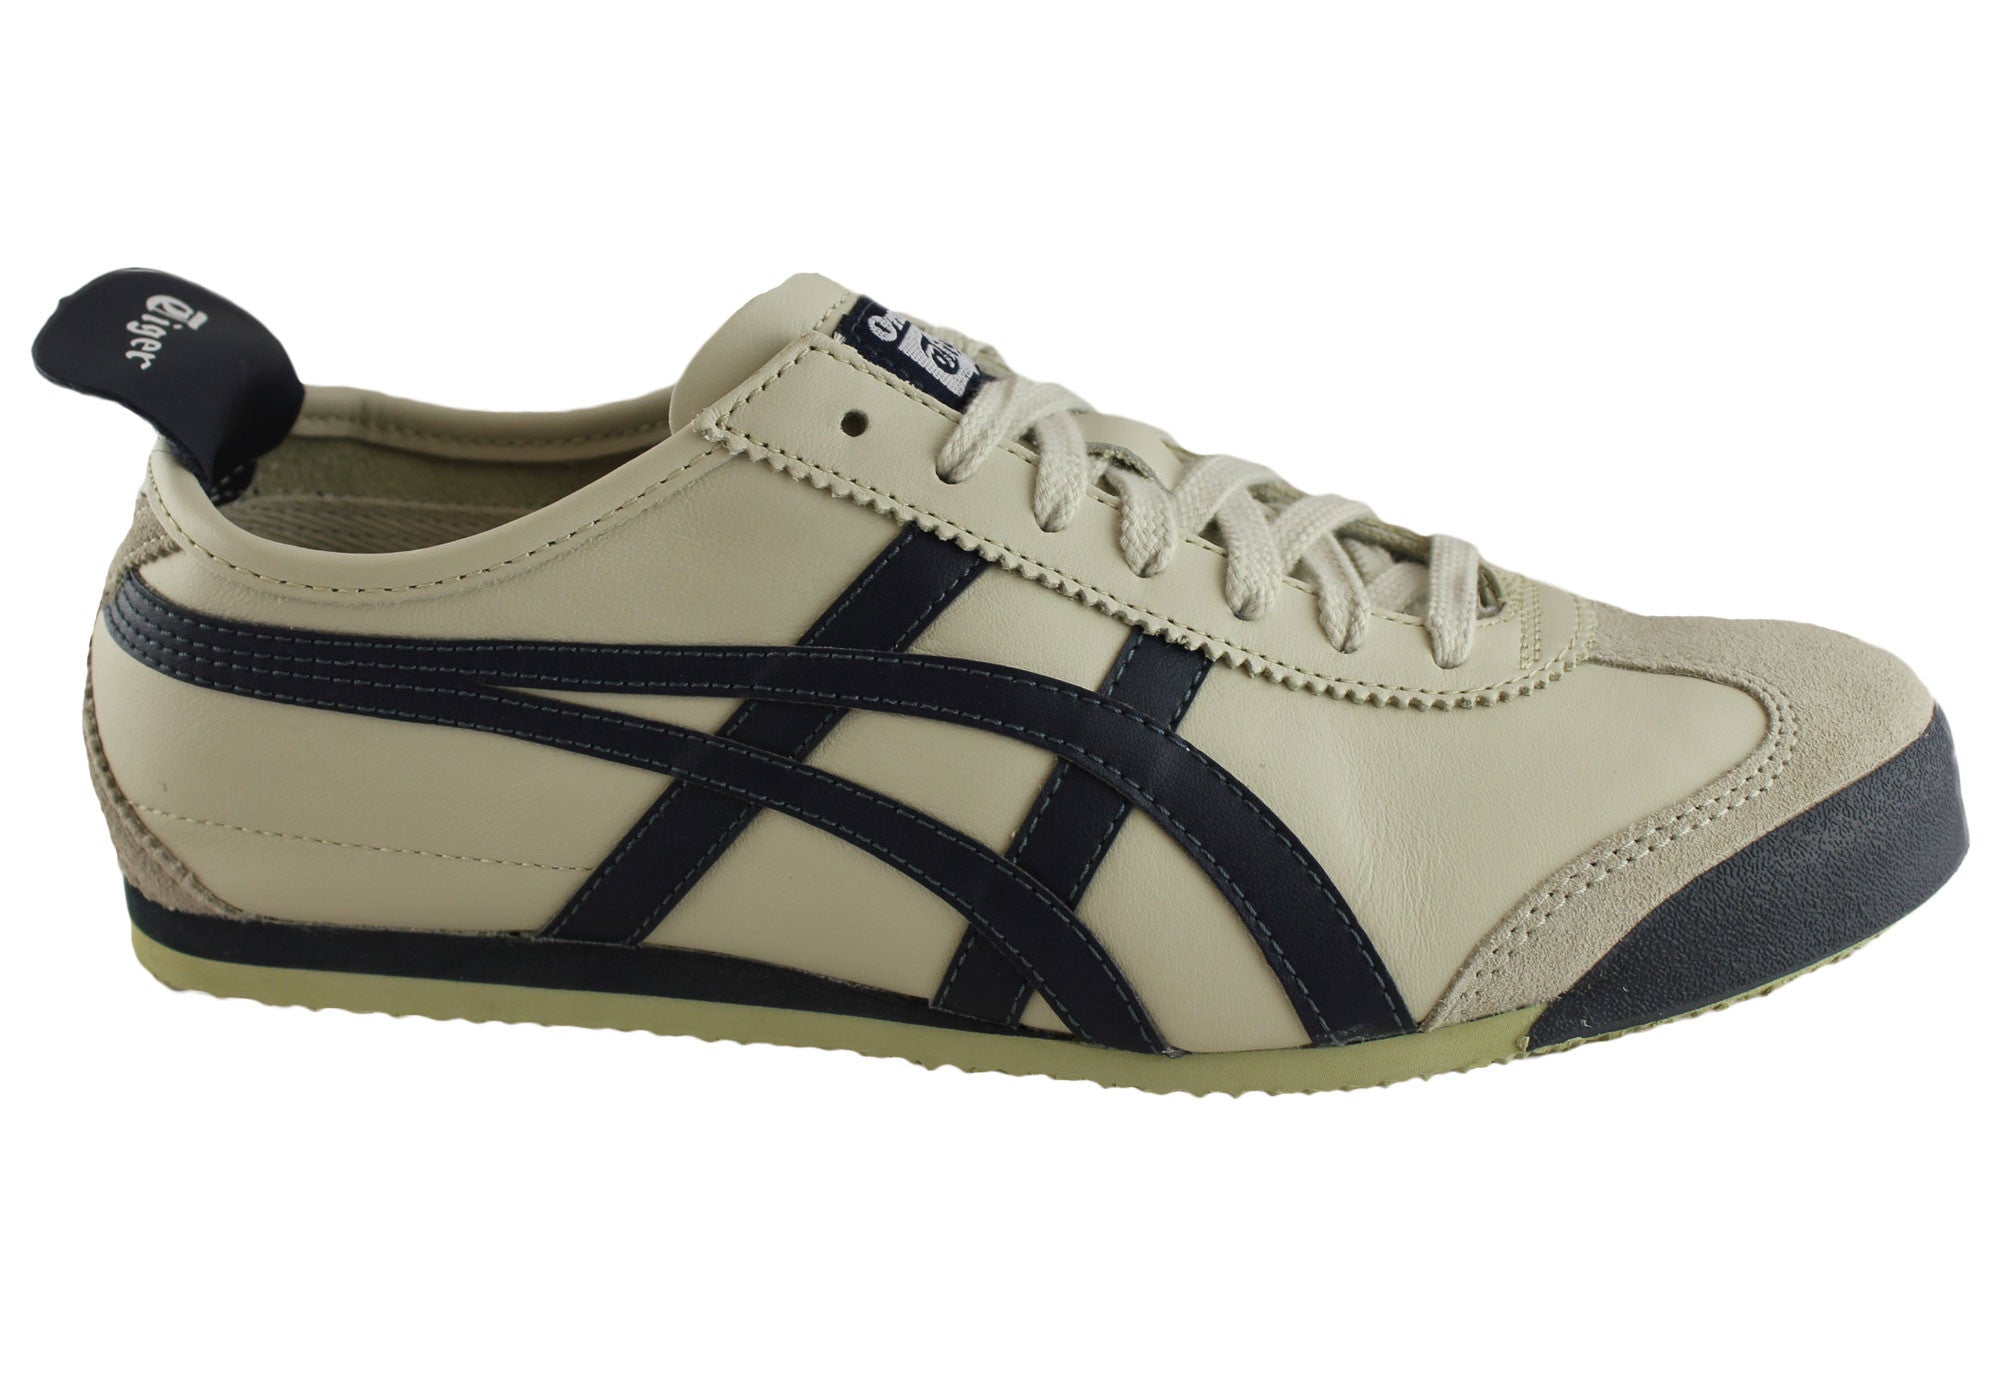 NEW ASICS ONITSUKA TIGER MEXICO 66 MENS CASUAL SHOES  750e79931846